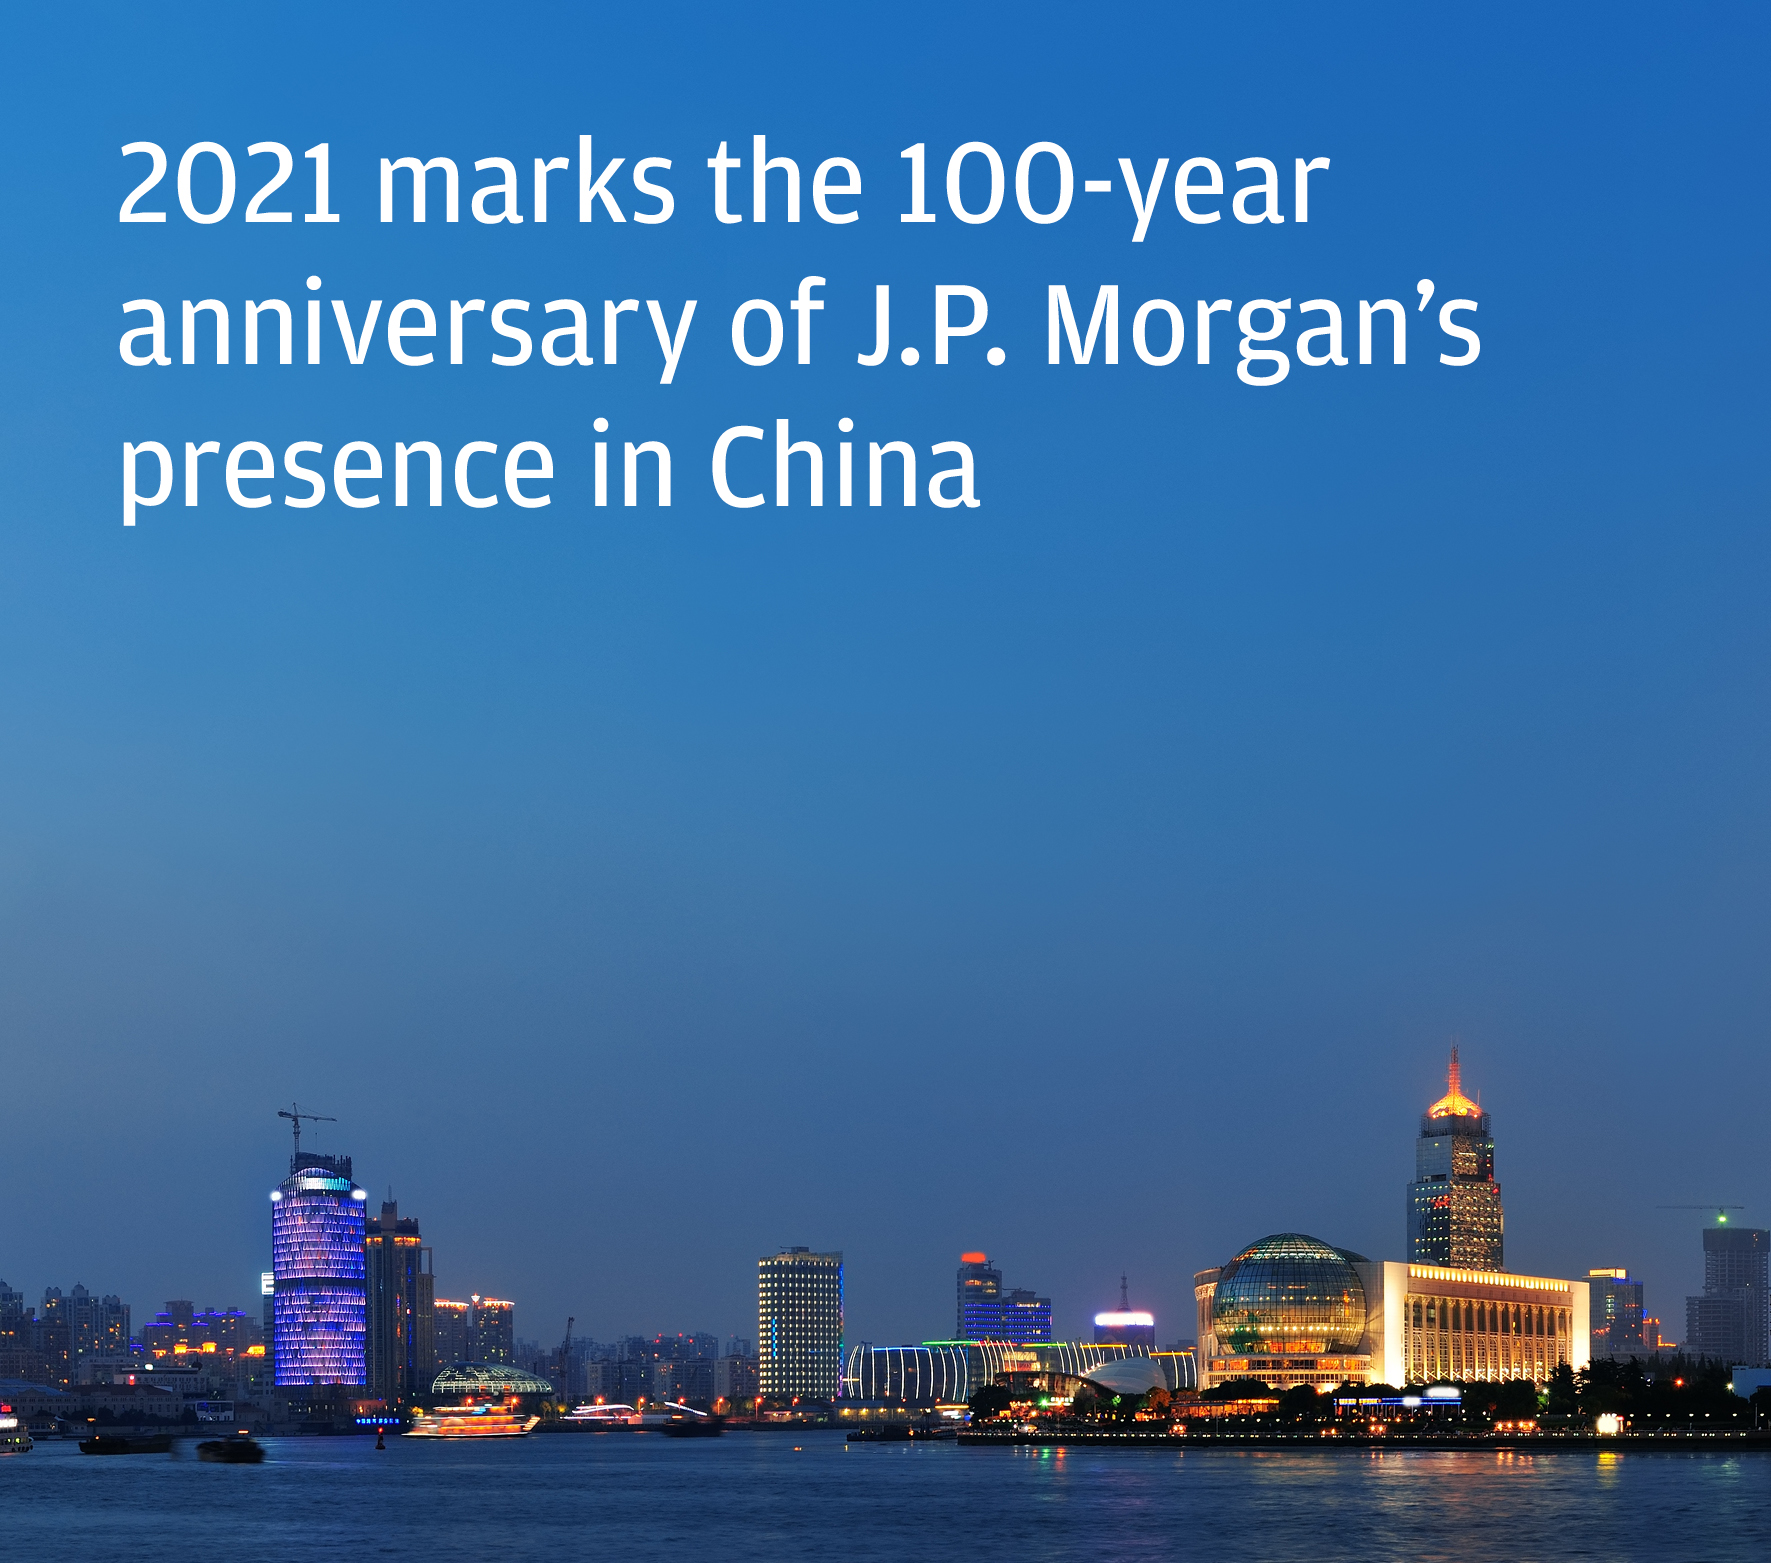 2021 marks the 100-year anniversary of J.P. Morgan's presence in China